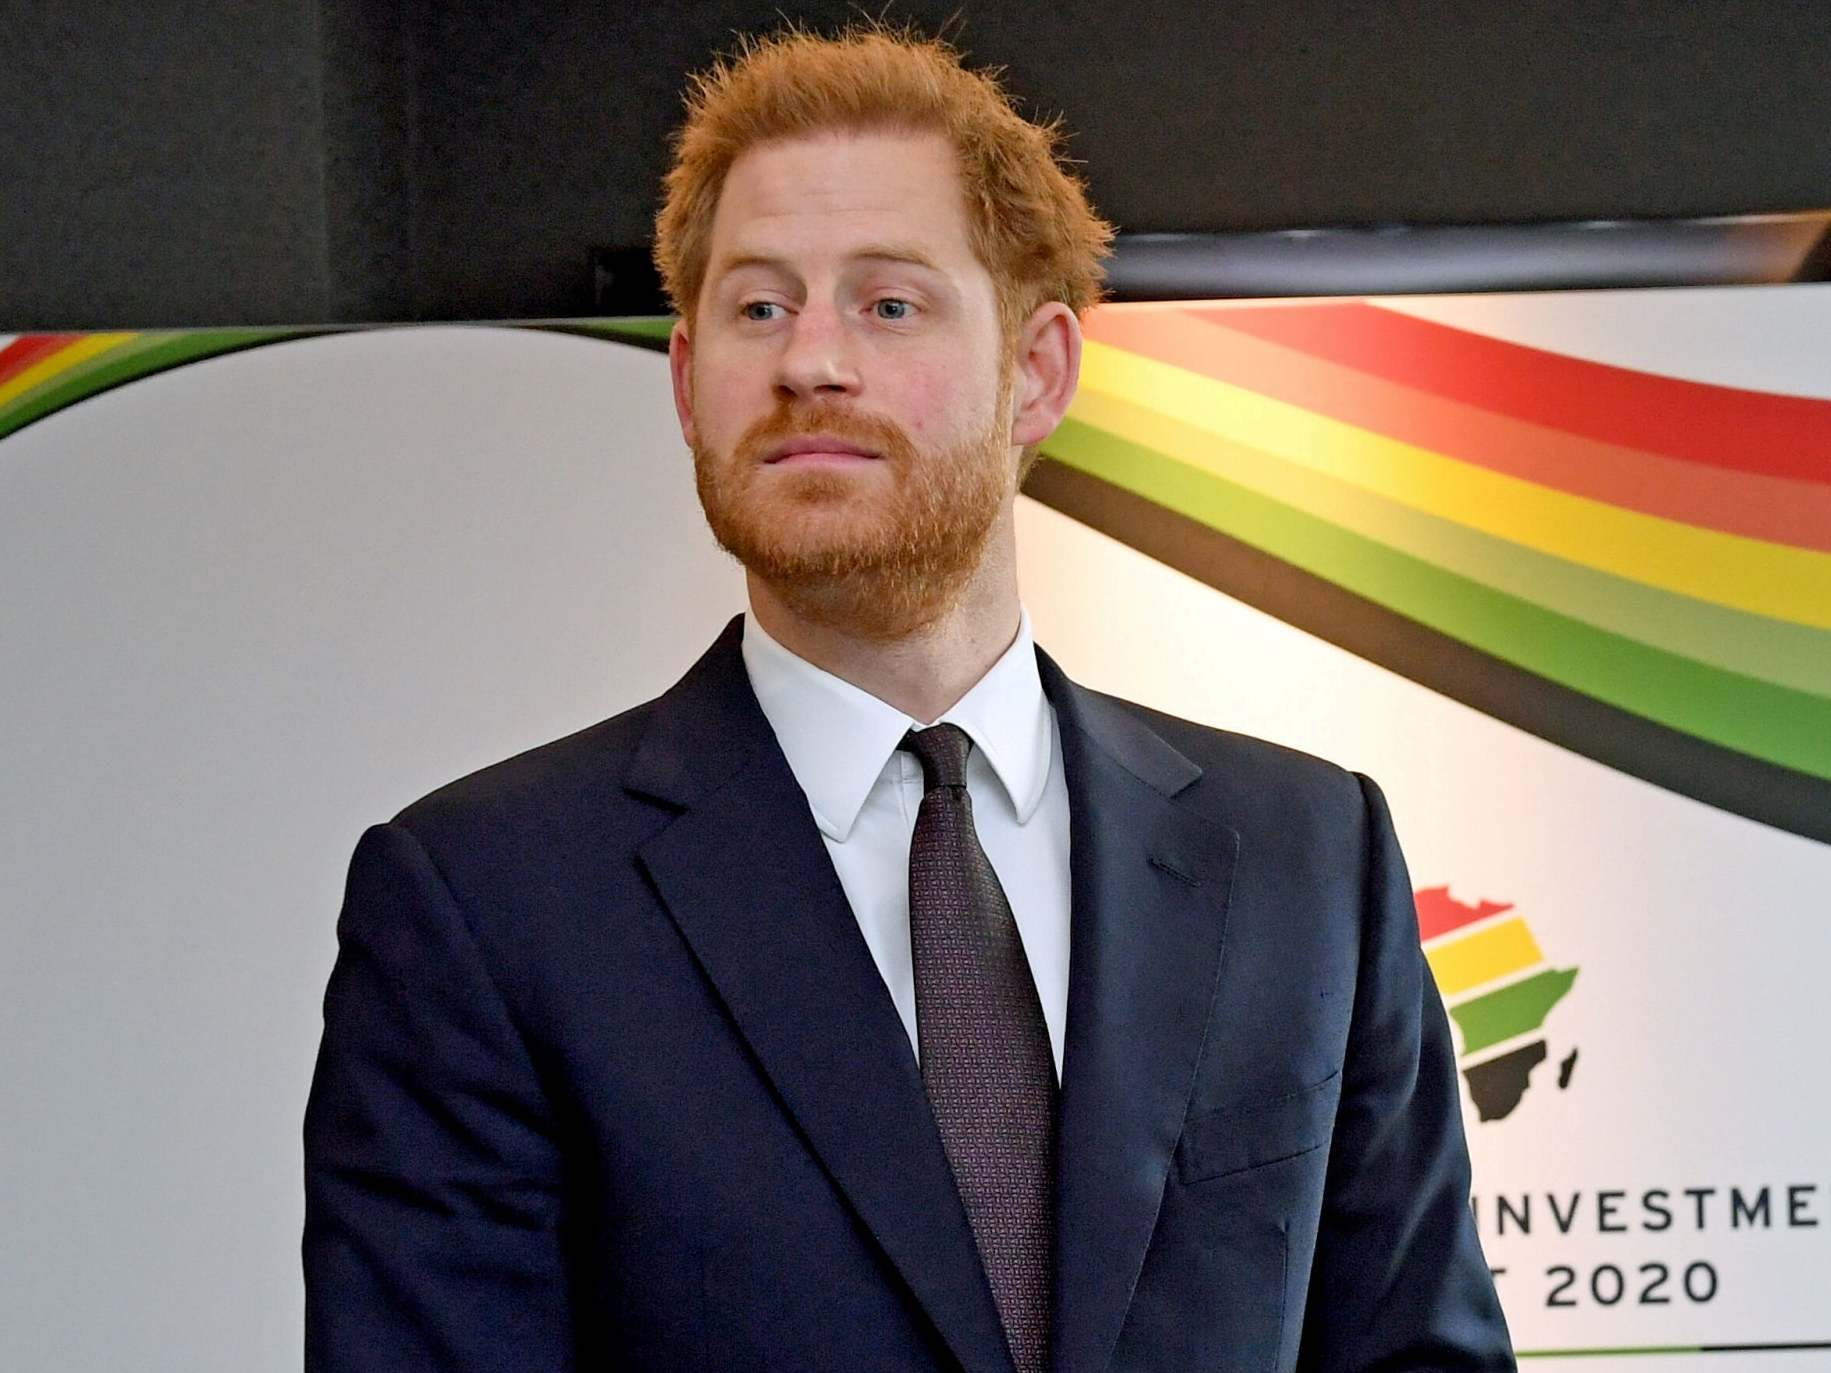 Prince Harry arrives in UK for last round of royal engagements